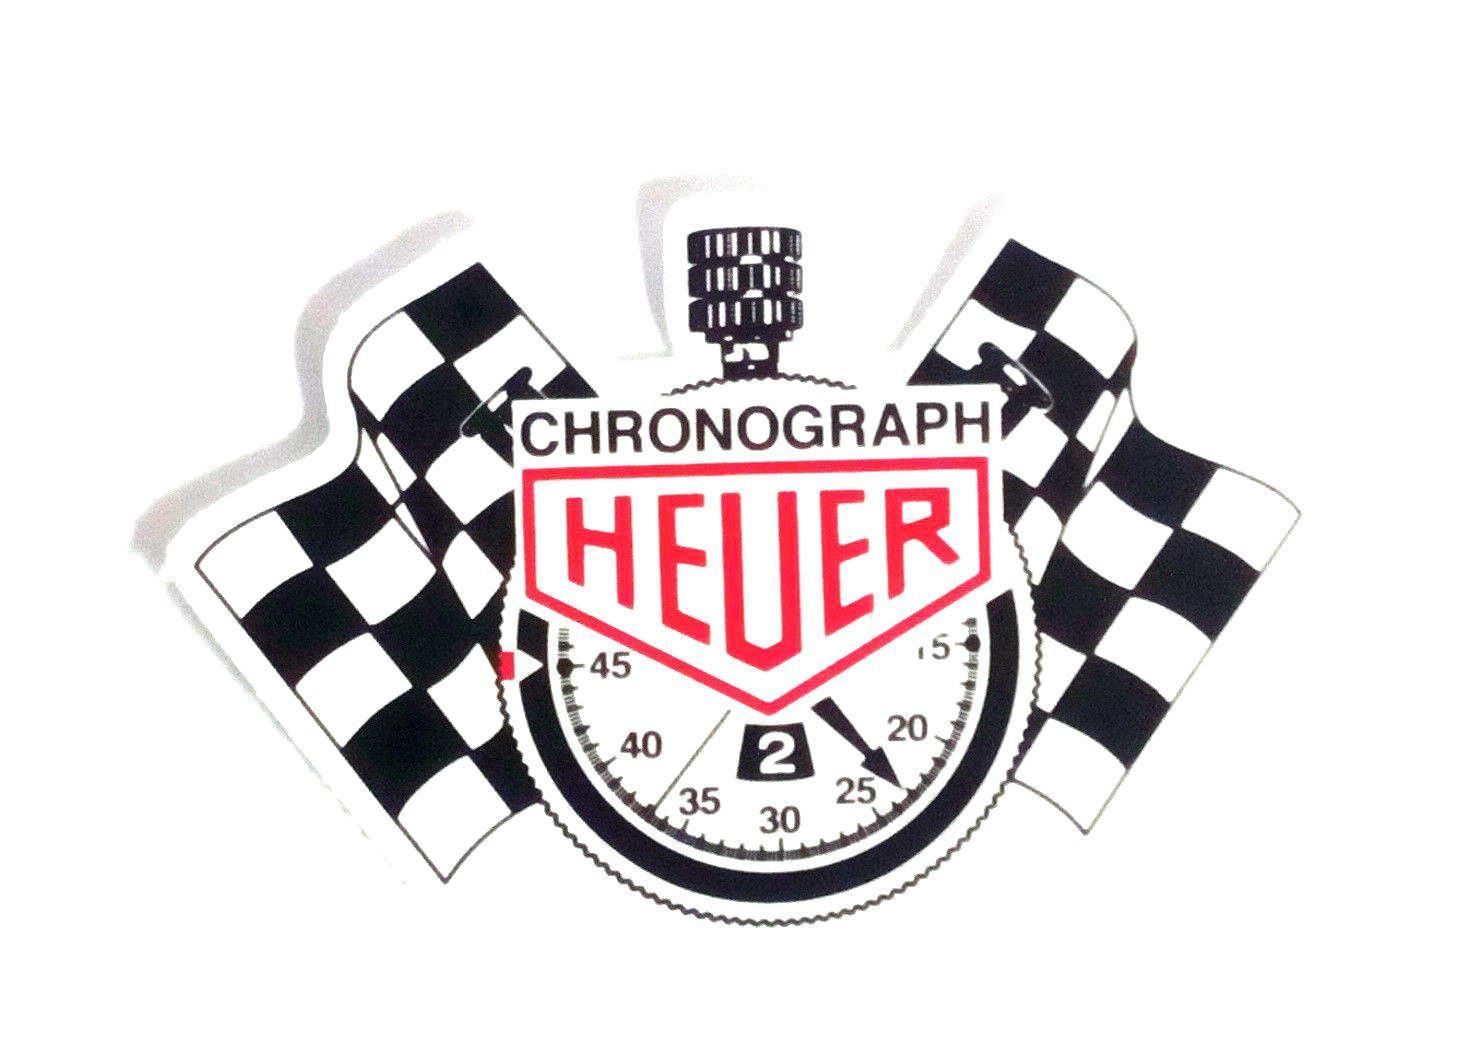 Tag heuer chronograph sticker logo racing monaco turbo car decal jdm decal bumpe ebay